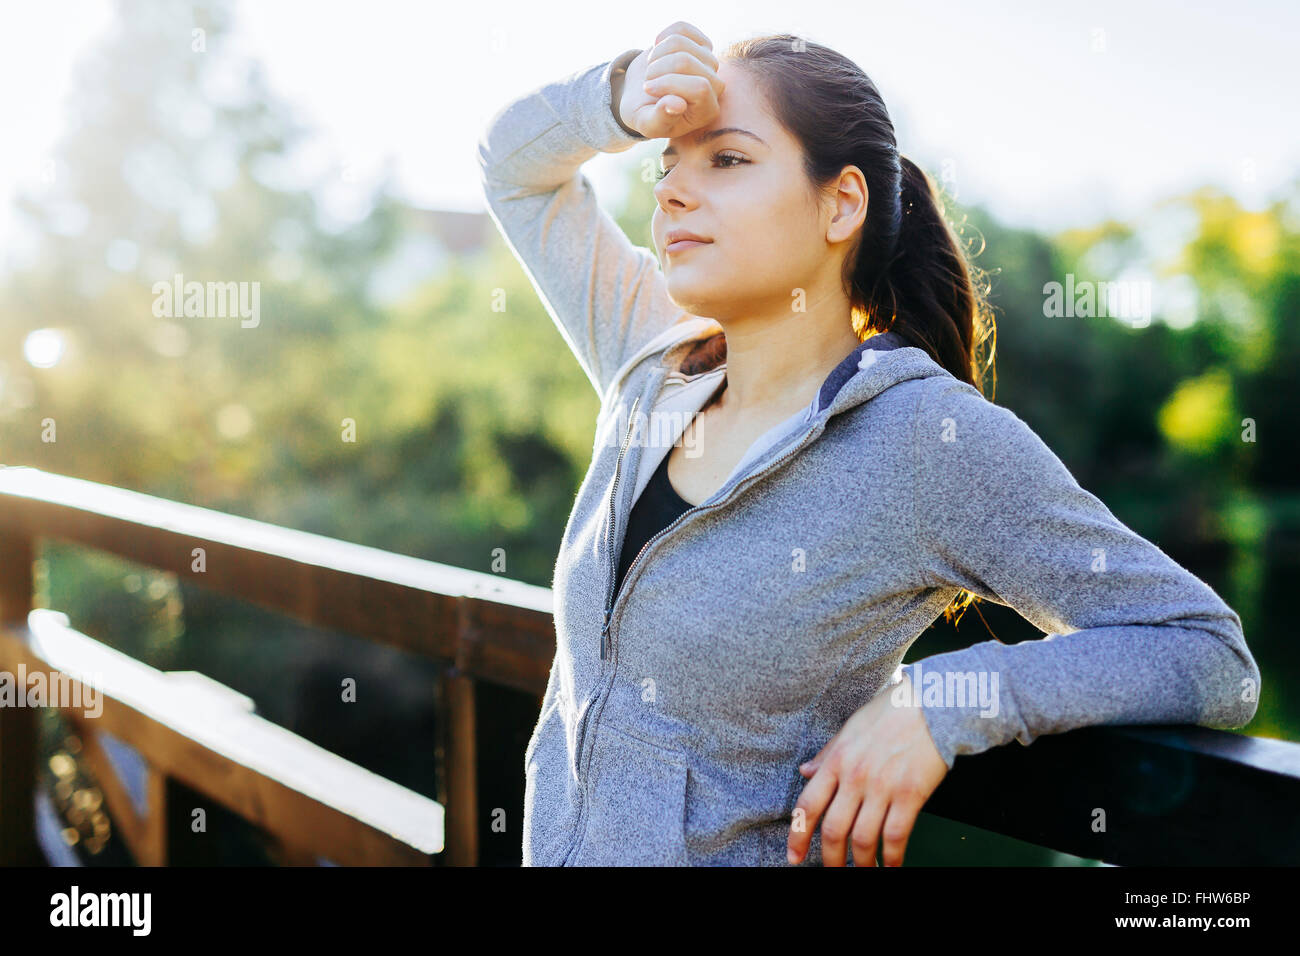 Beautiful woman resting after jogging outdoors and being exhausted - Stock Image